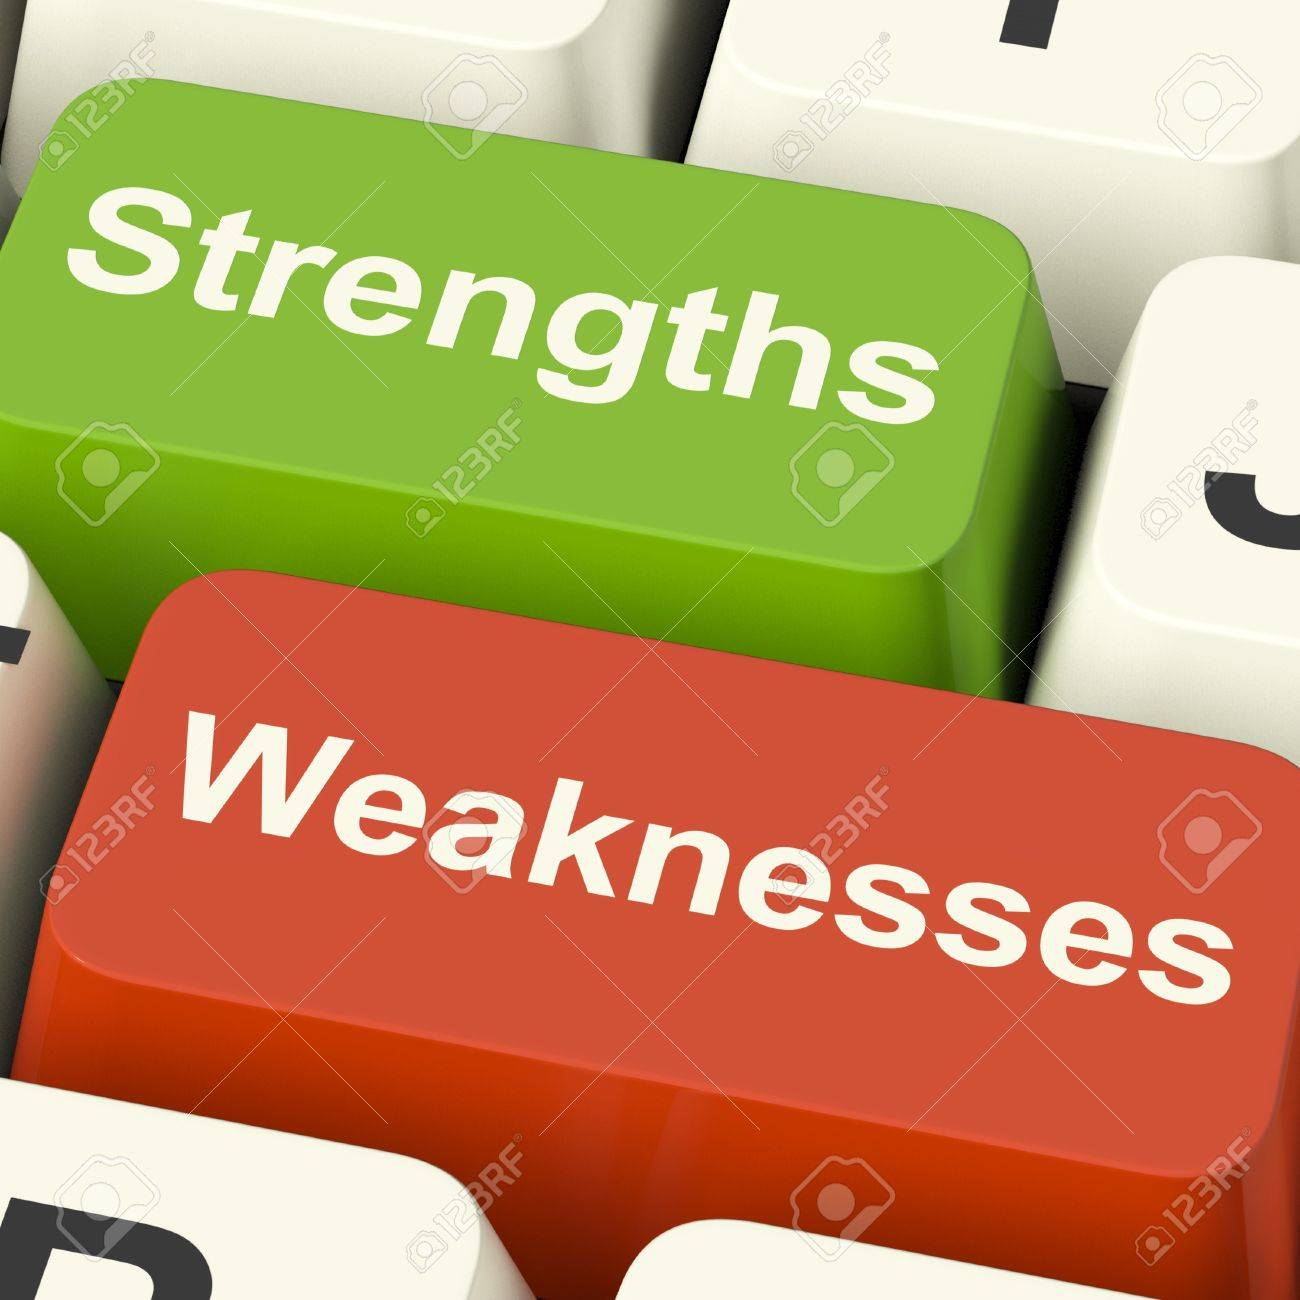 strengths and weaknesses computer keys shows performance or stock photo strengths and weaknesses computer keys shows performance or analyzing